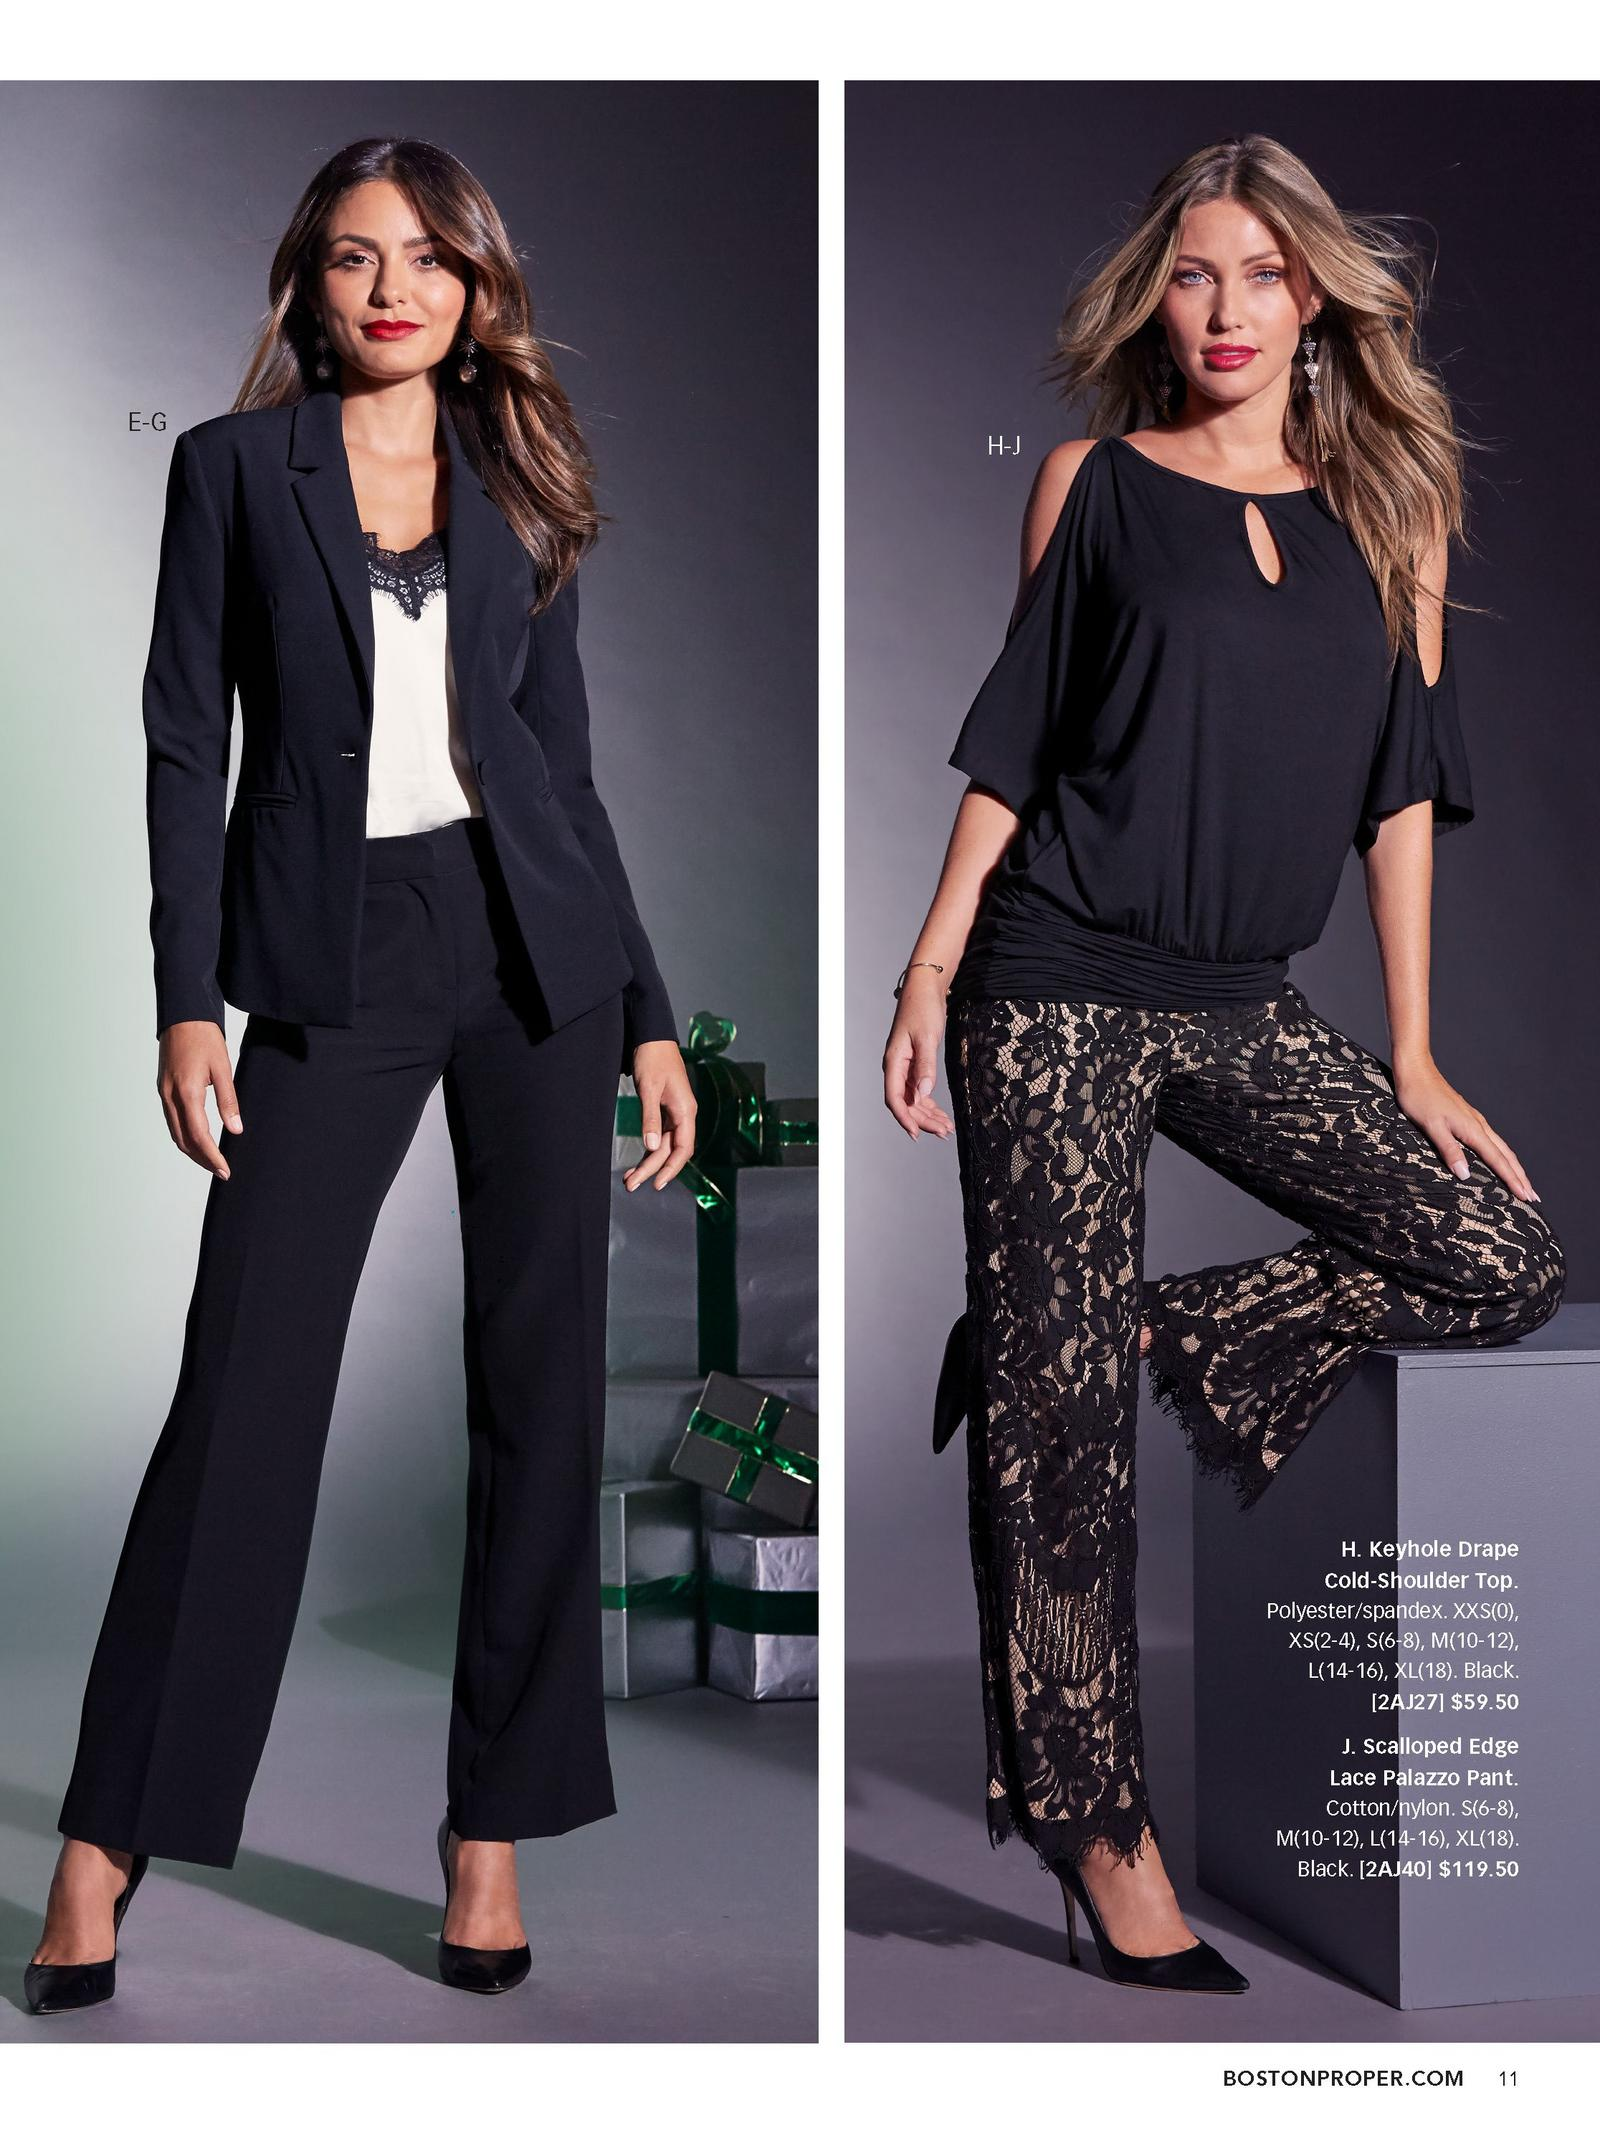 left: black single button blazer over a lace trim charm cami and black chic crepe pant. right: black keyhole drape cold-shoulder top and black scalloped edge lace palazzo pant.